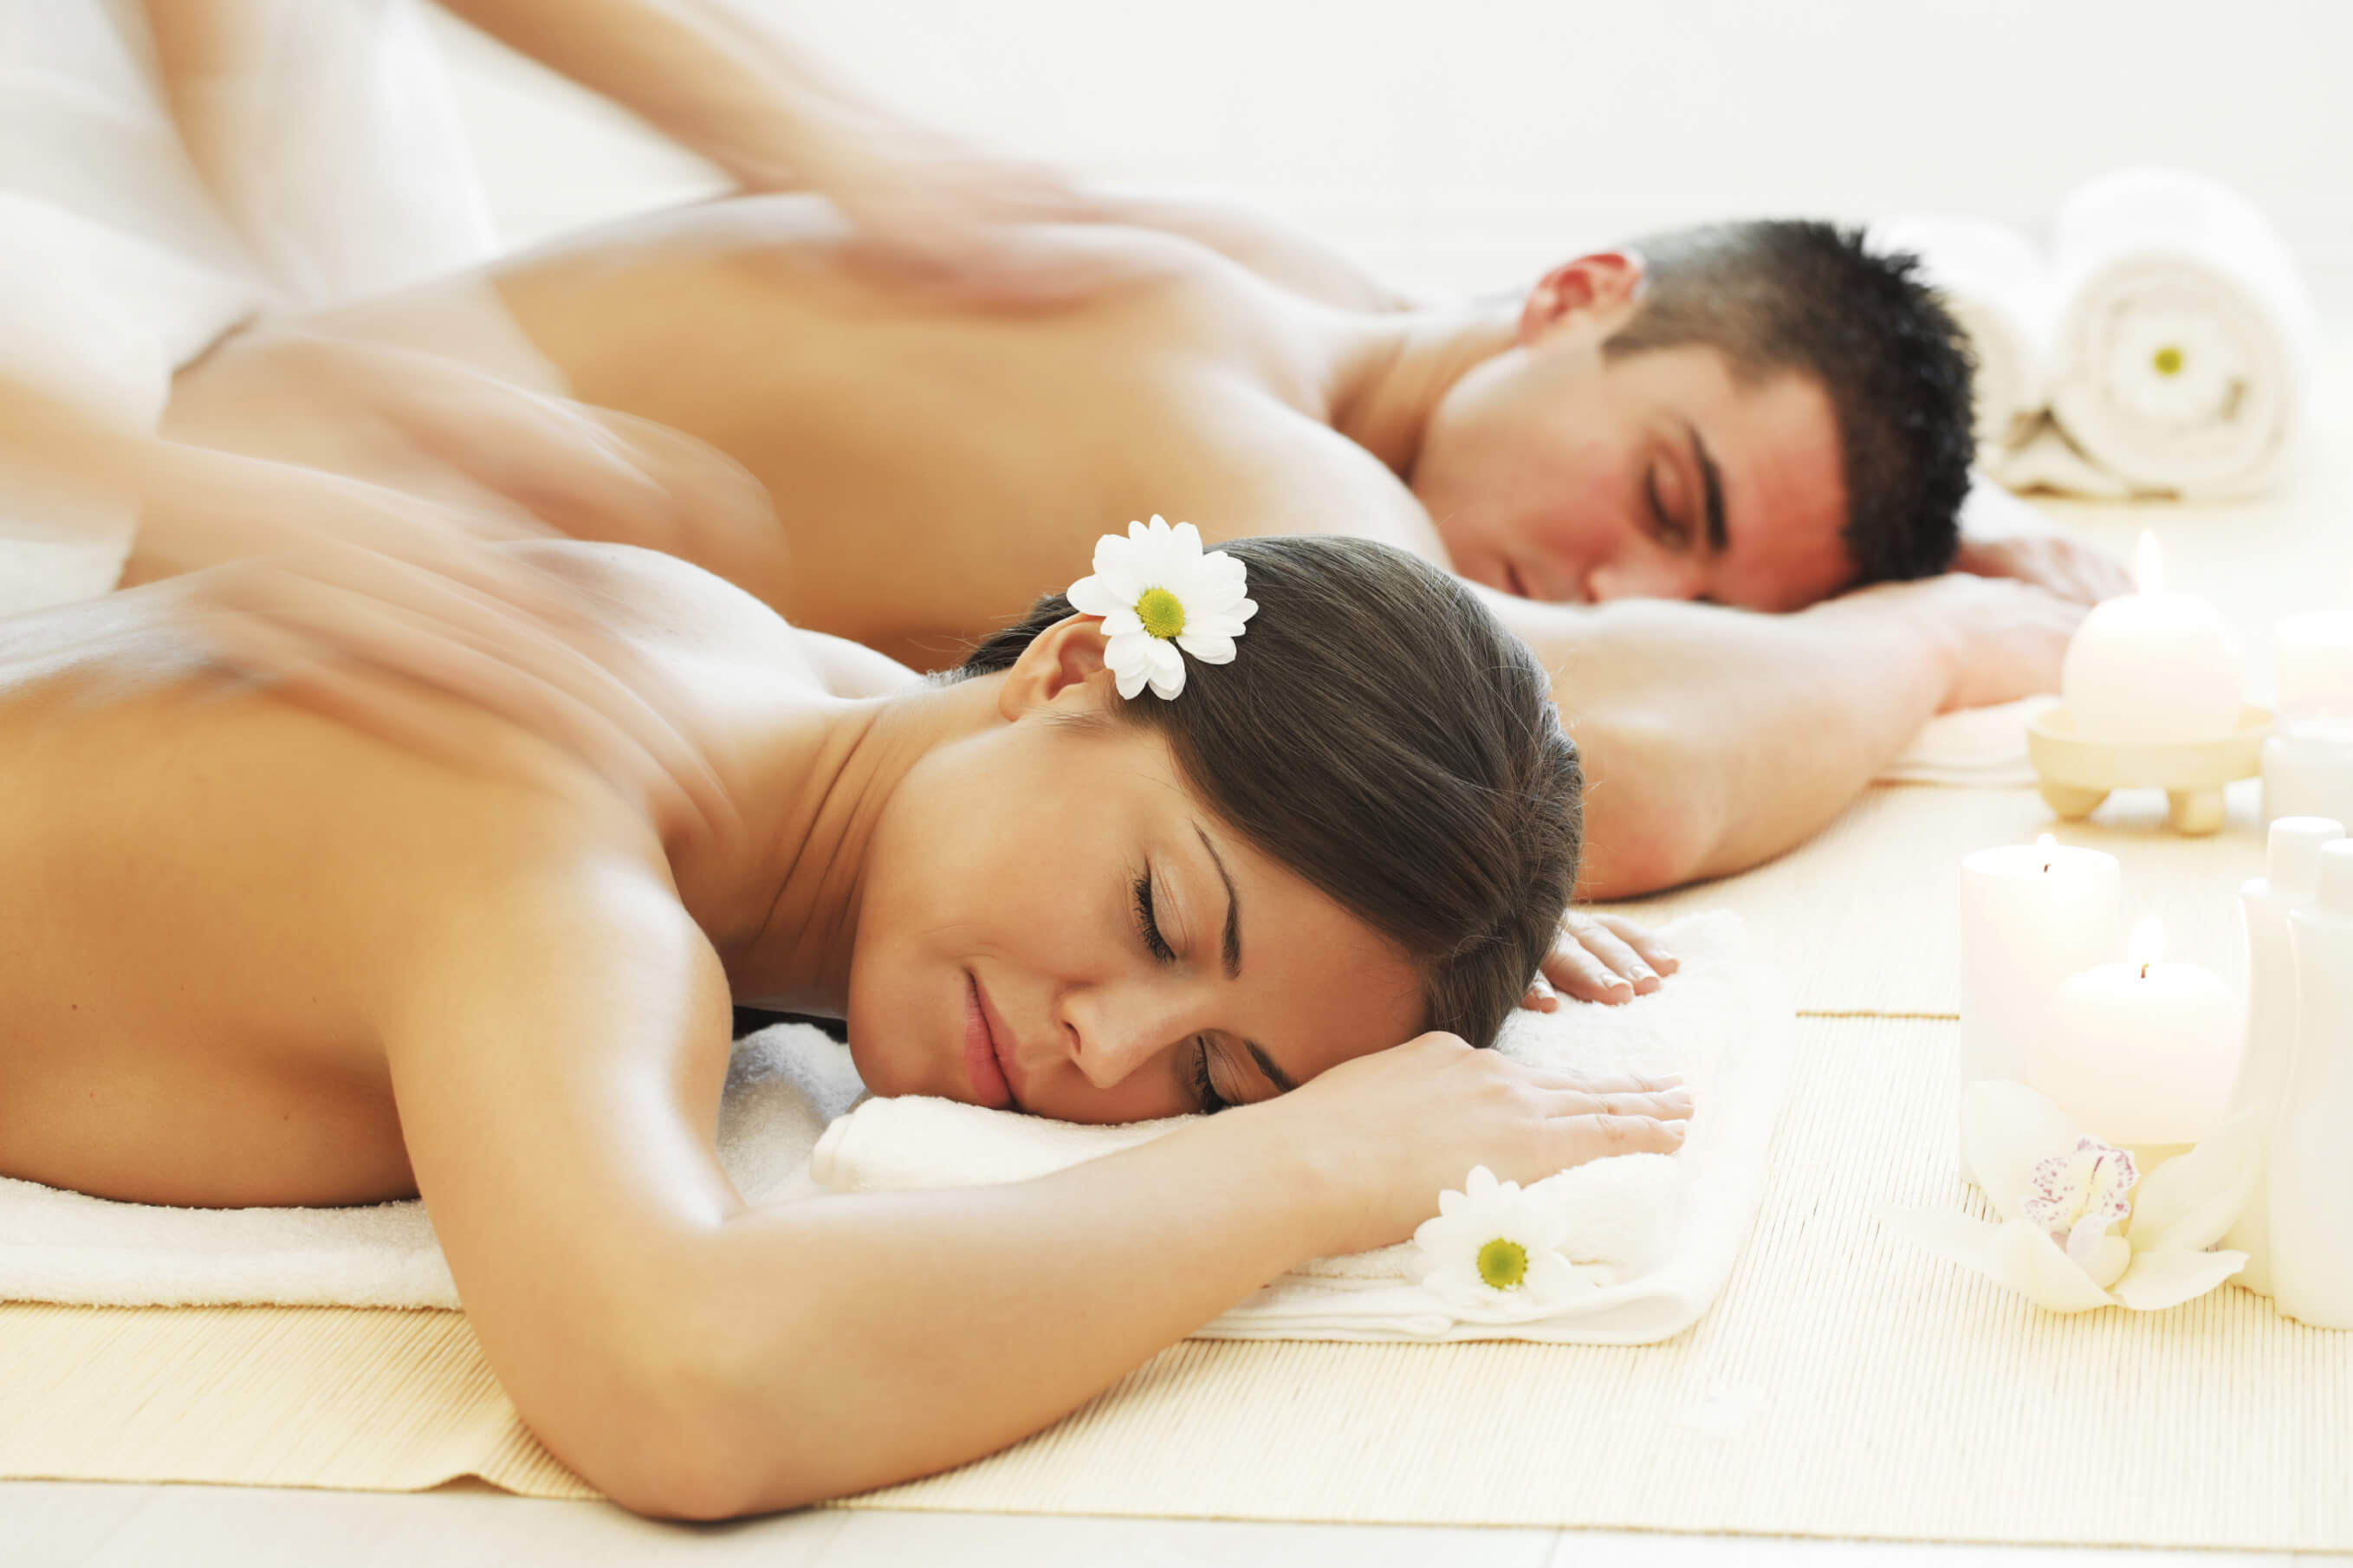 Good Massage Helps Avoiding Cellulite Formation